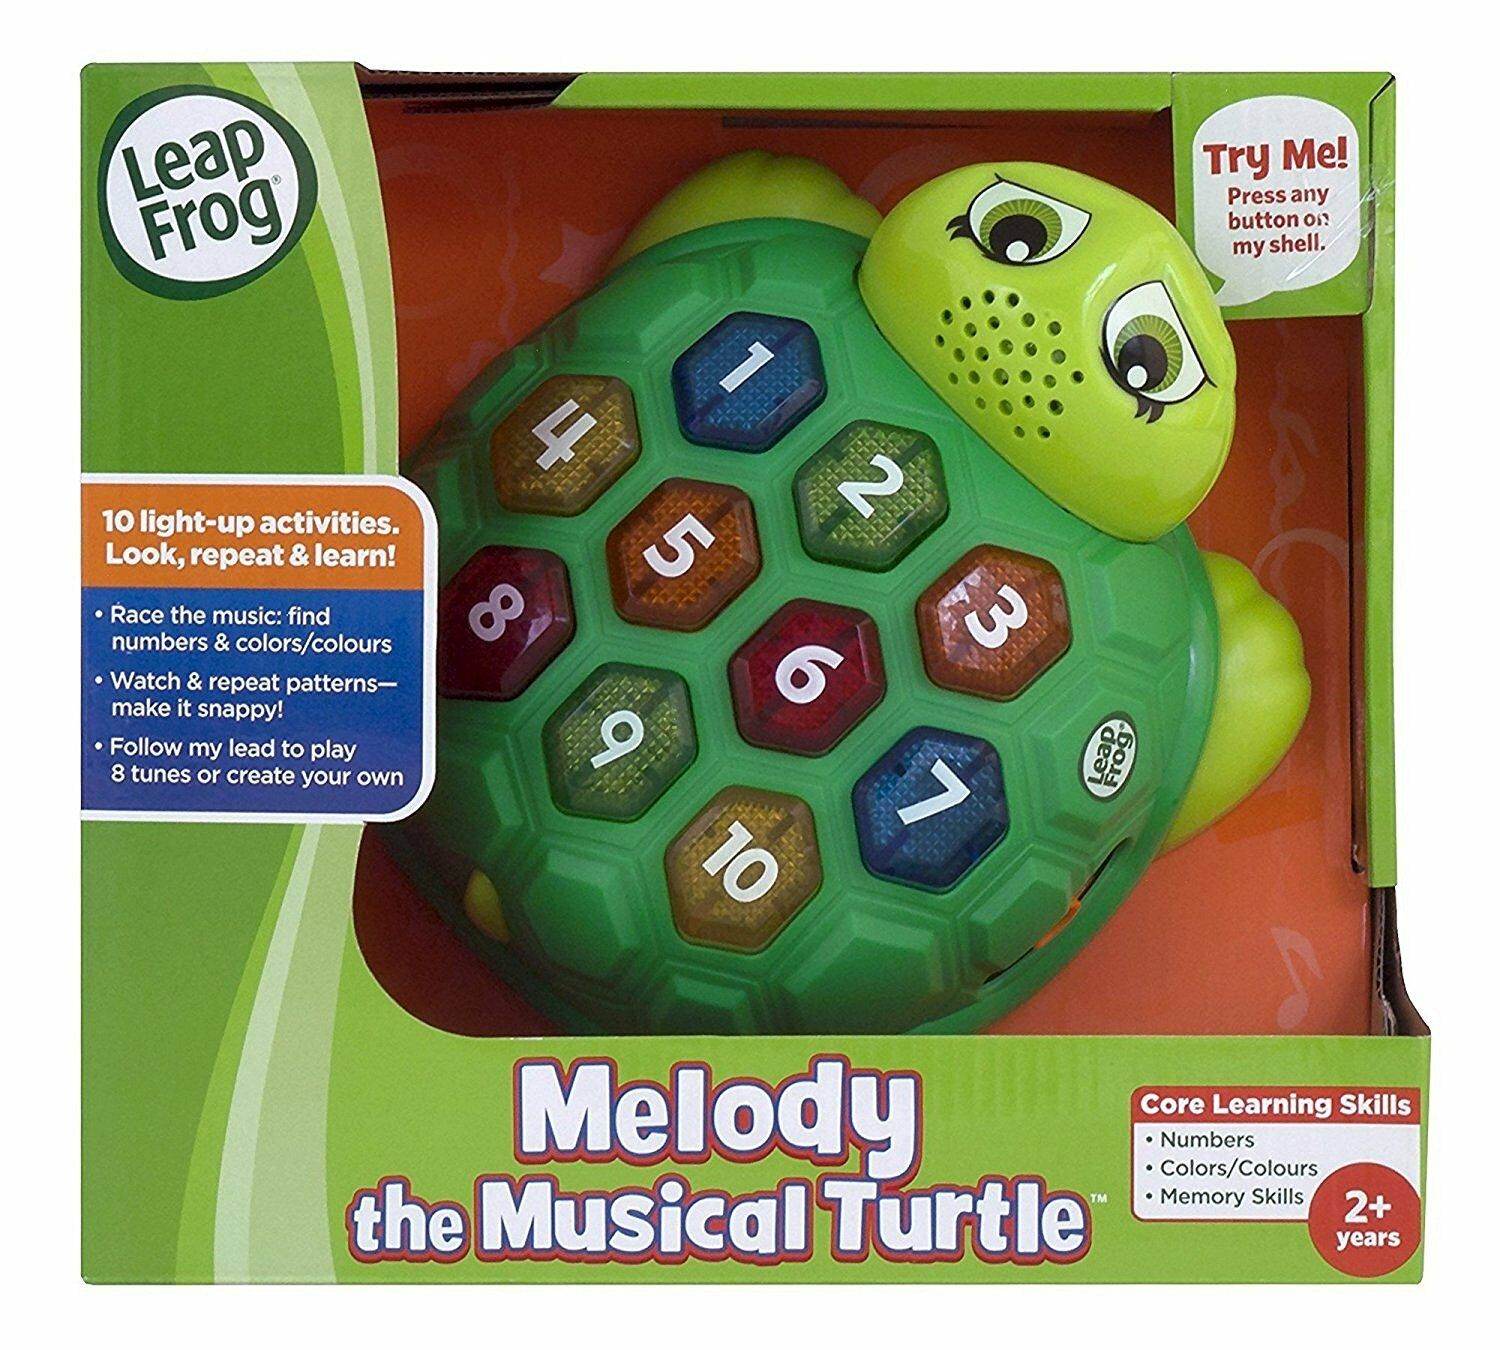 A LeapFrog Melody The Musical Turtle